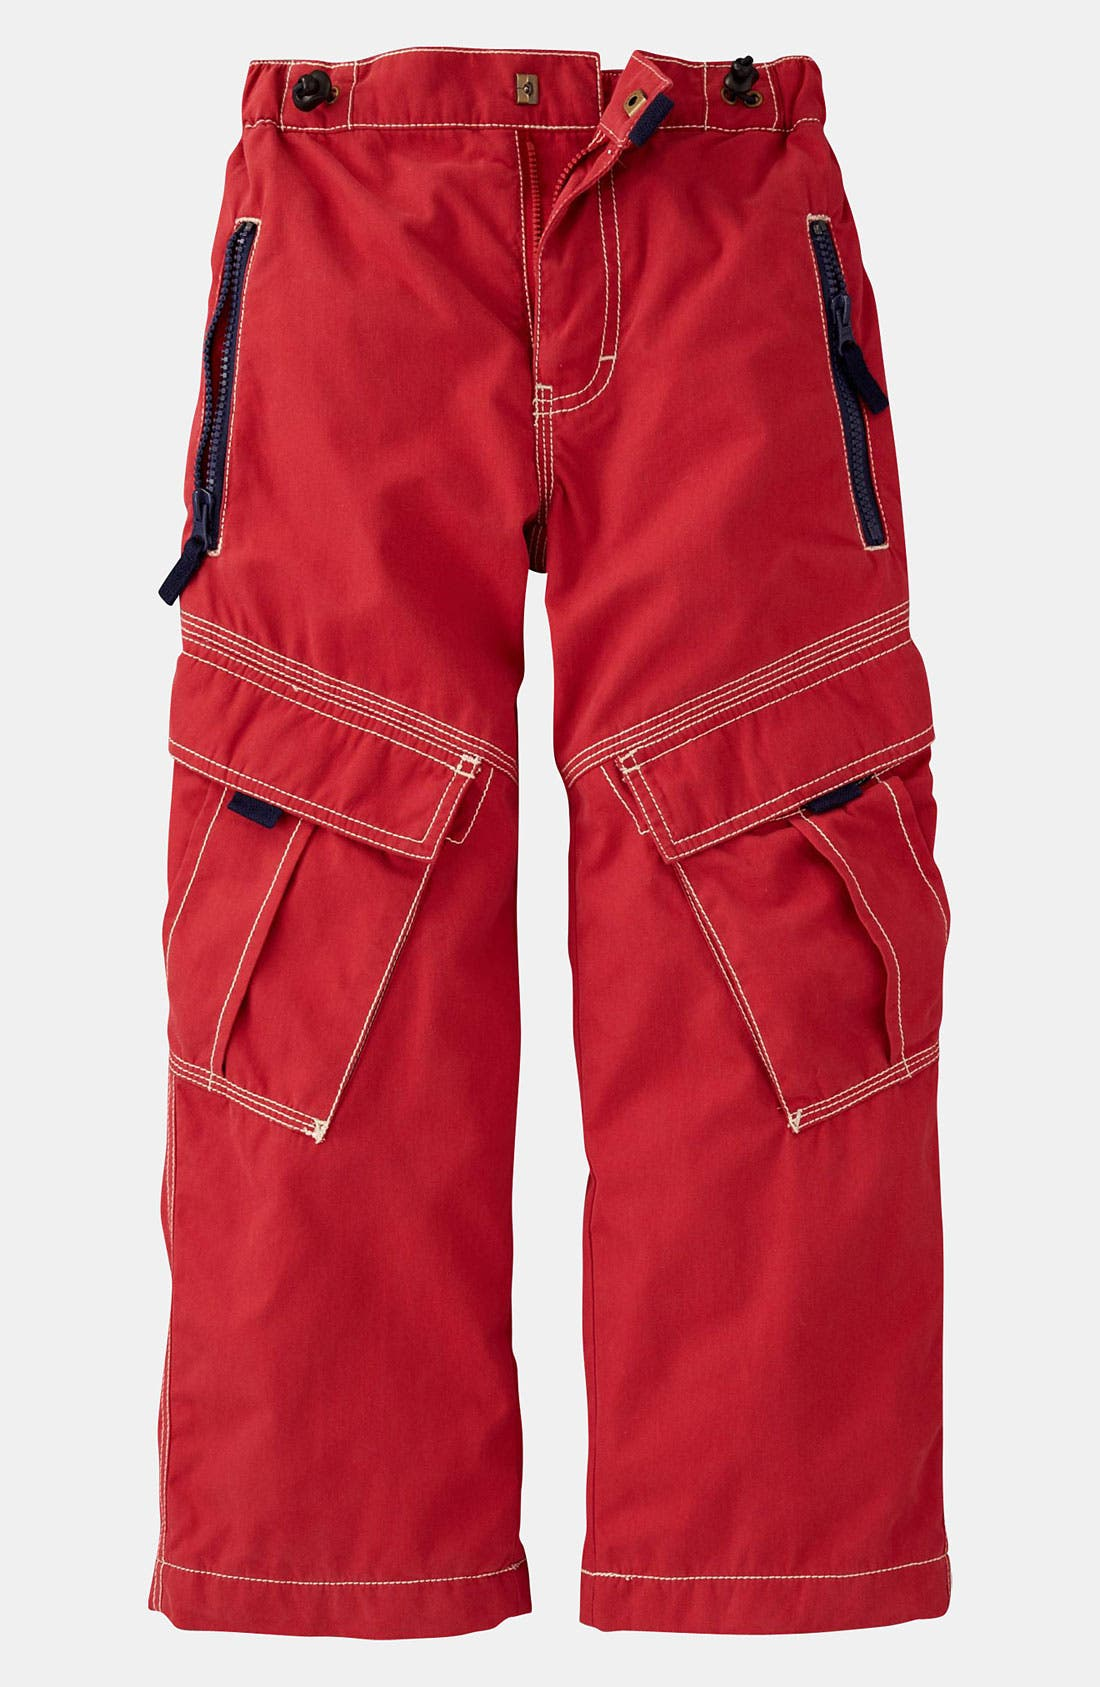 Alternate Image 1 Selected - Mini Boden 'Skate' Cargo Pants (Little Boys & Big Boys)